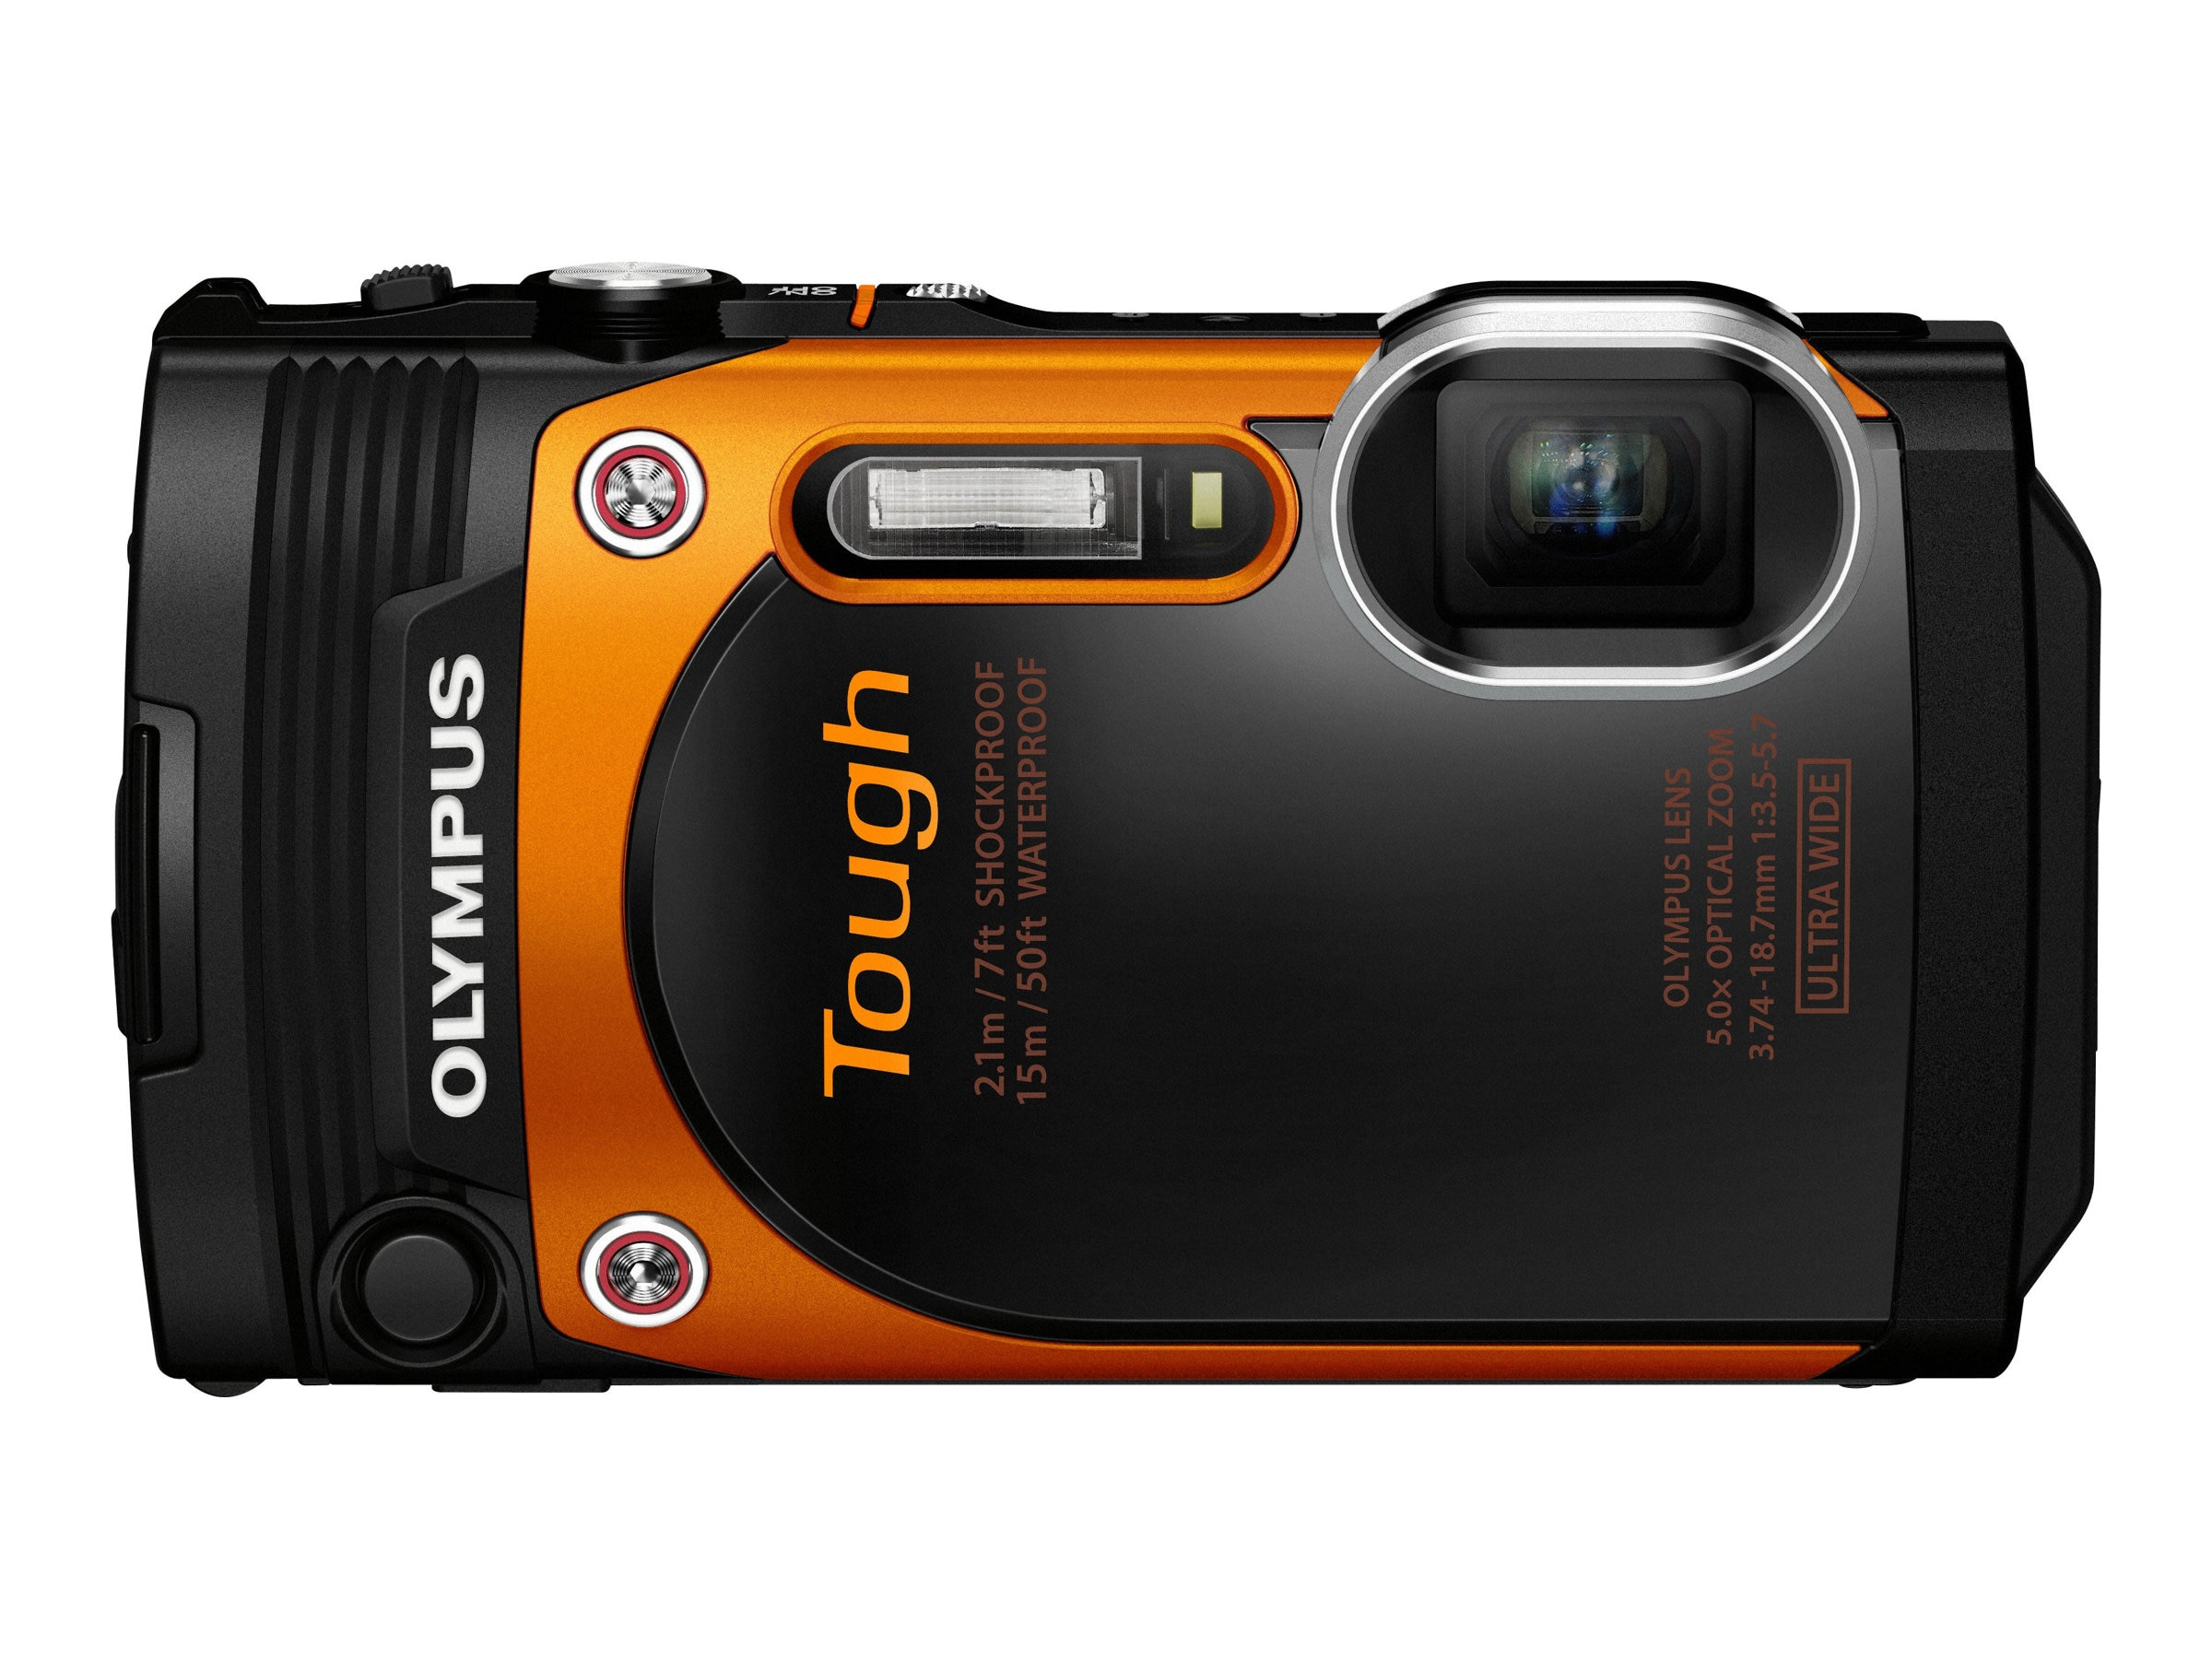 Olympus Stylus Tough TG-860 Digital Camera, 16 MP, Orange, V104170OU000, 18478221, Cameras - Digital - Point & Shoot